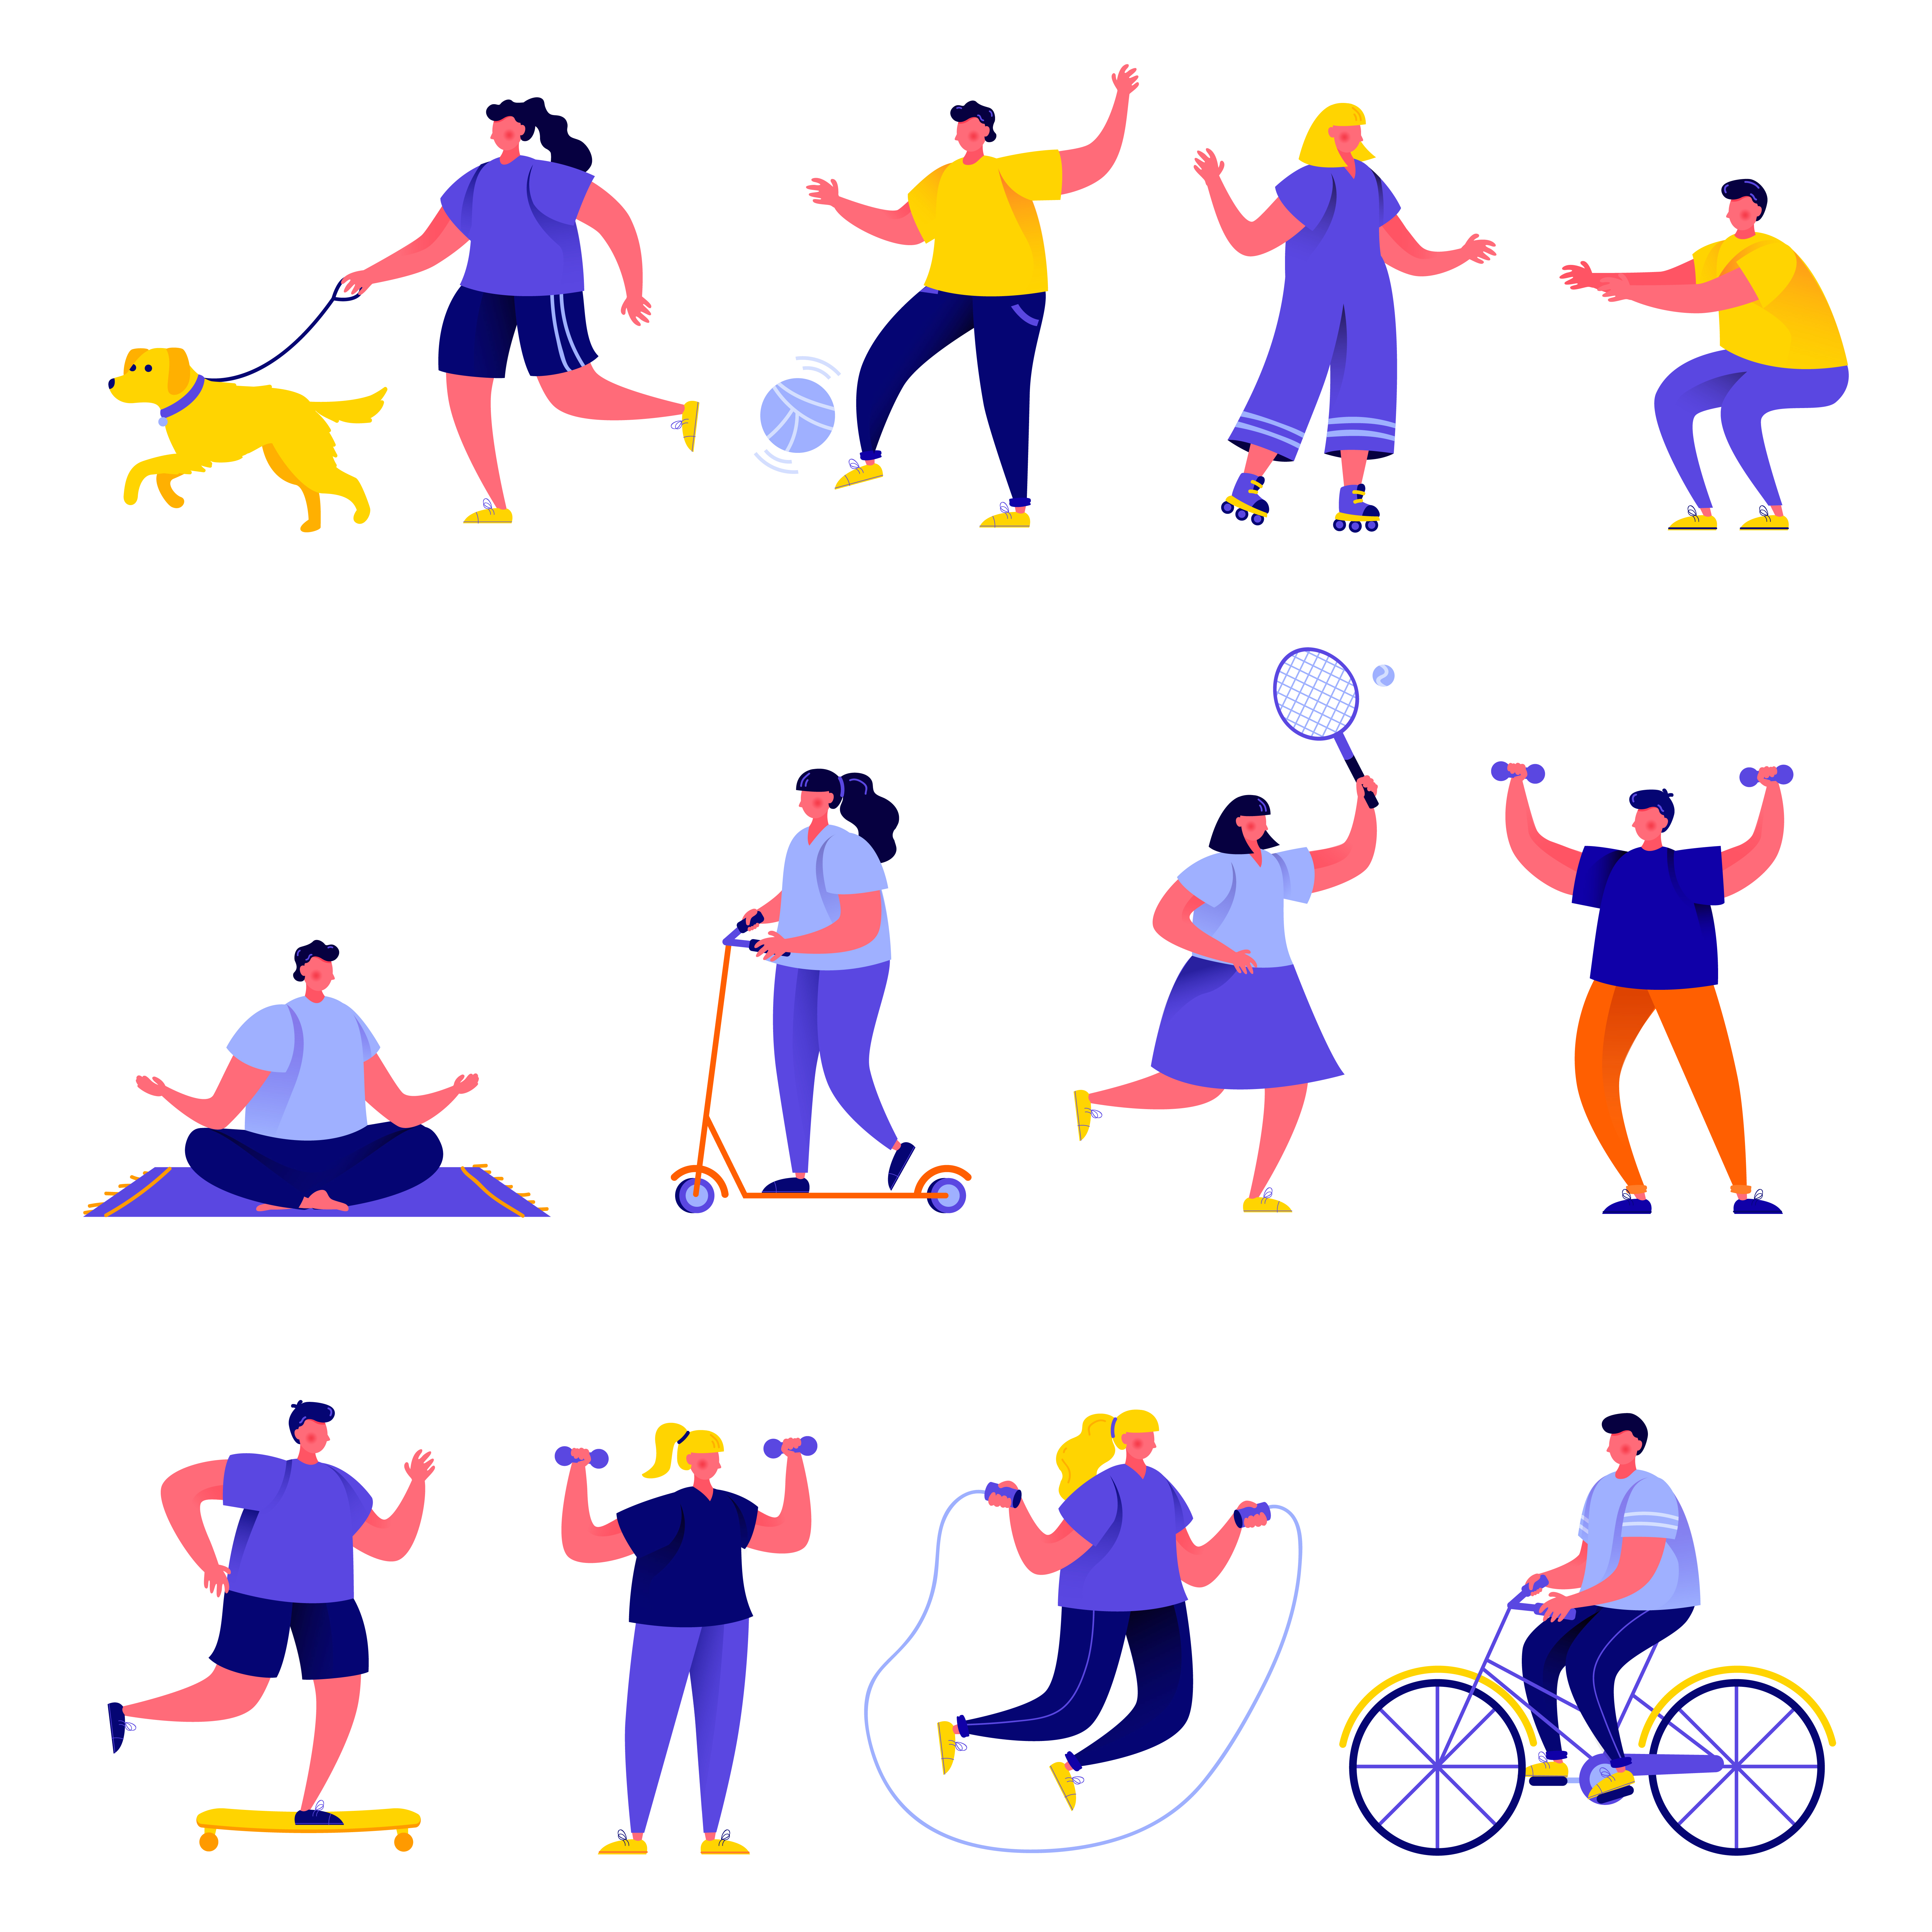 Video Game Logo Collection With Flat Design: Set Of Flat People Playing Sports And Being Active 677472